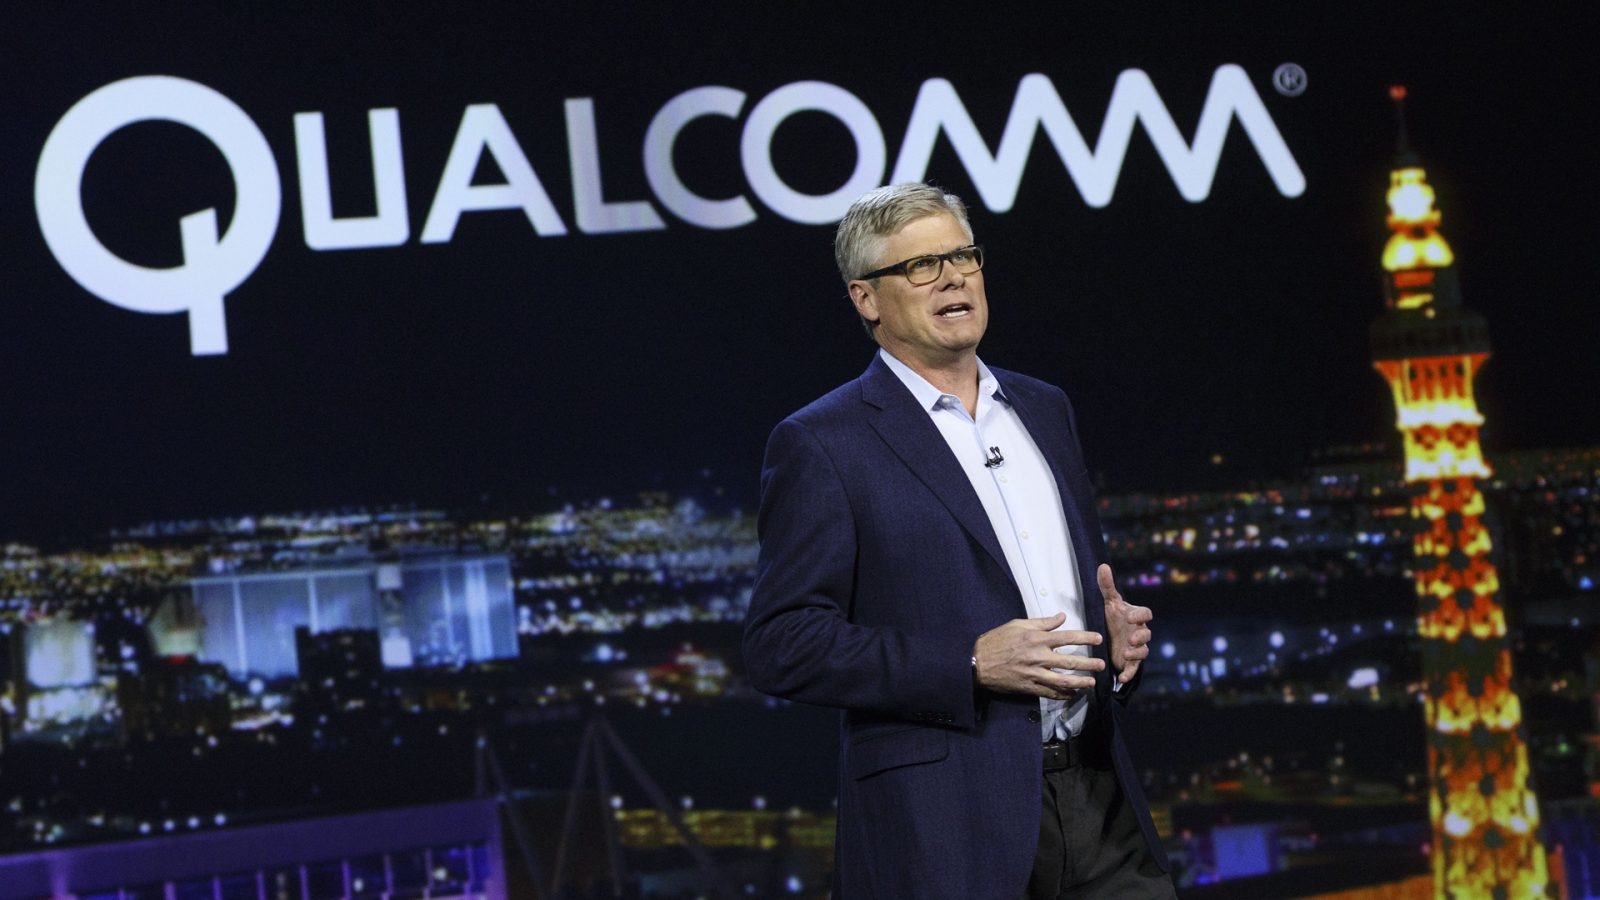 Qualcomm CEO, Other Executives Receive Massive Bonuses for Settling with Apple